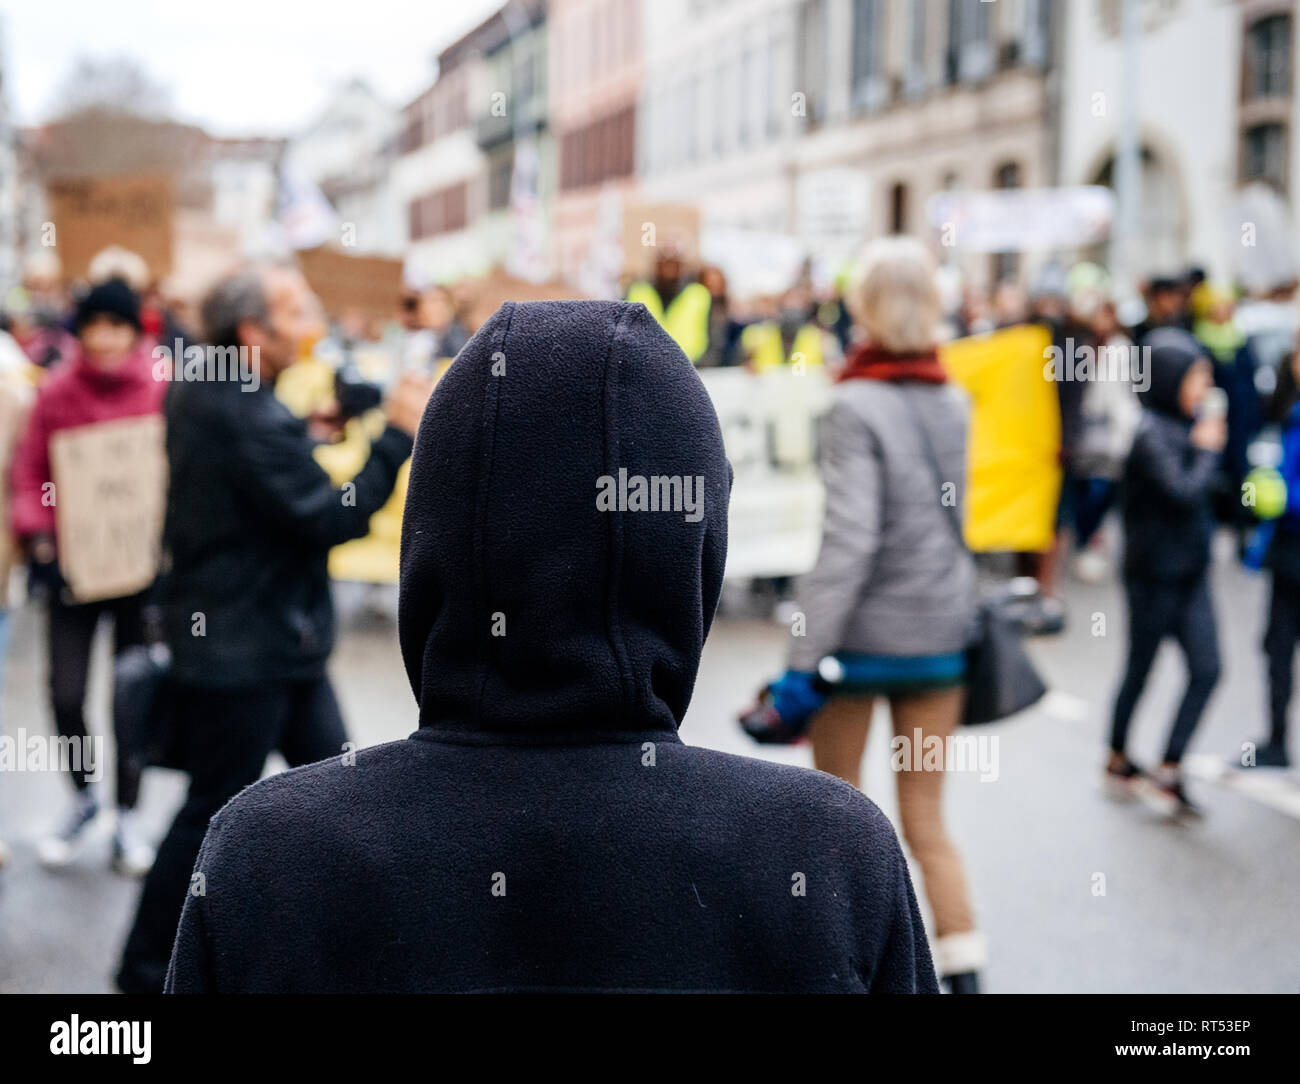 Silhouette looking at crowd marching in Central Strasbourg at the nationwide protest Marche Pour Le Climat - Stock Image